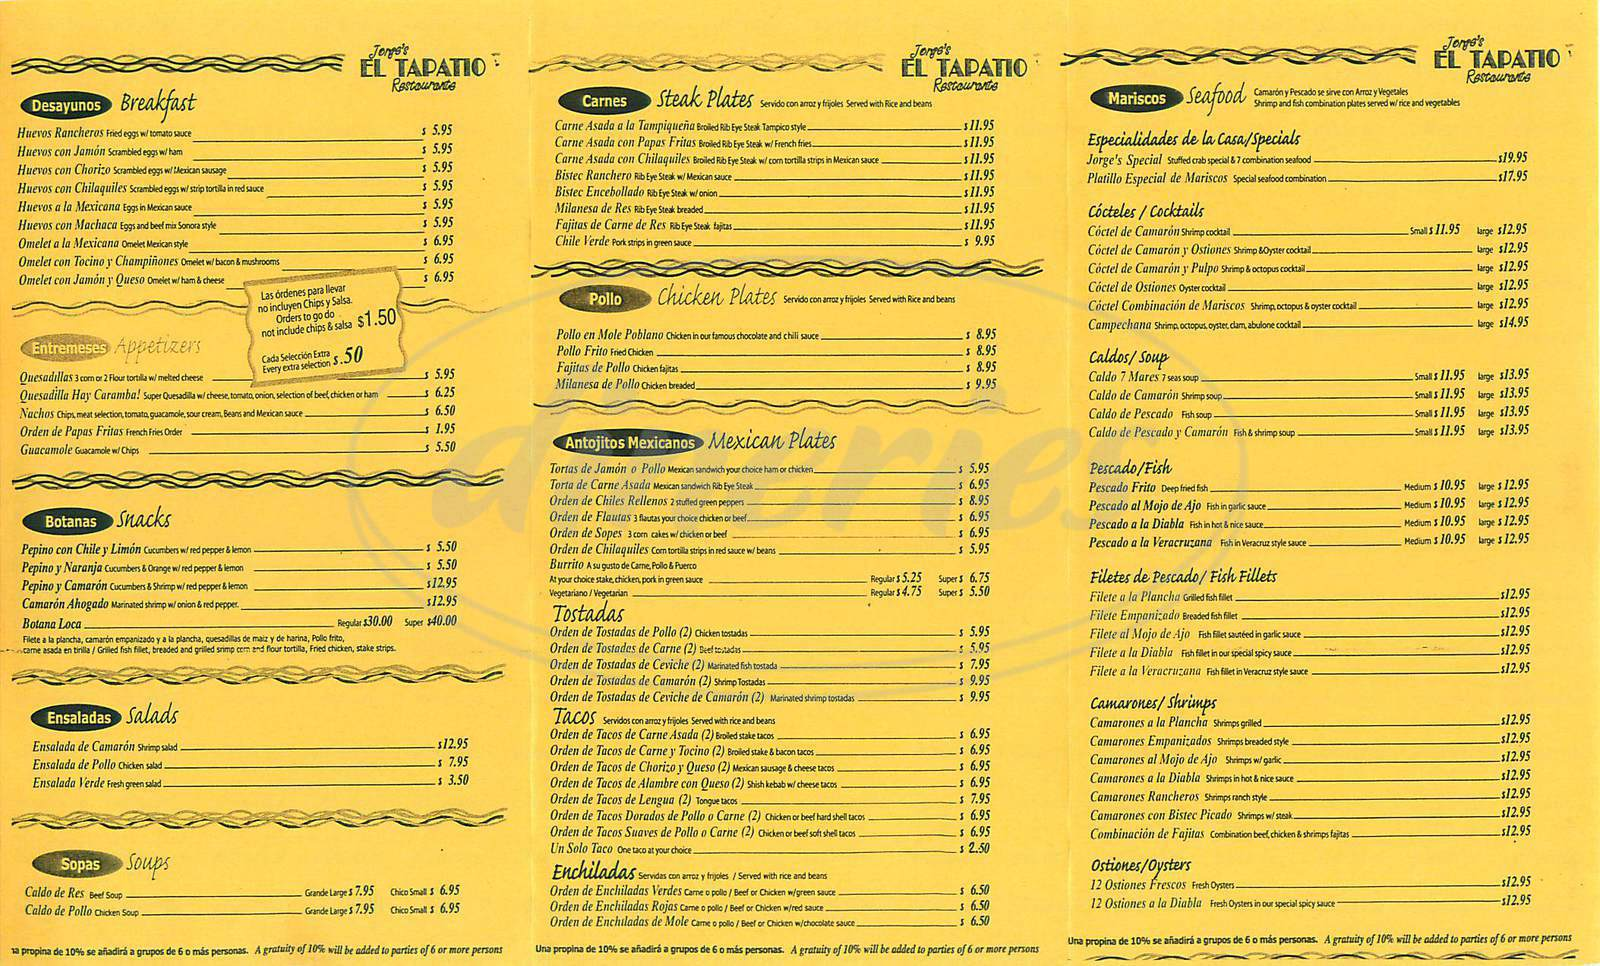 menu for Jorge's El Tapatio